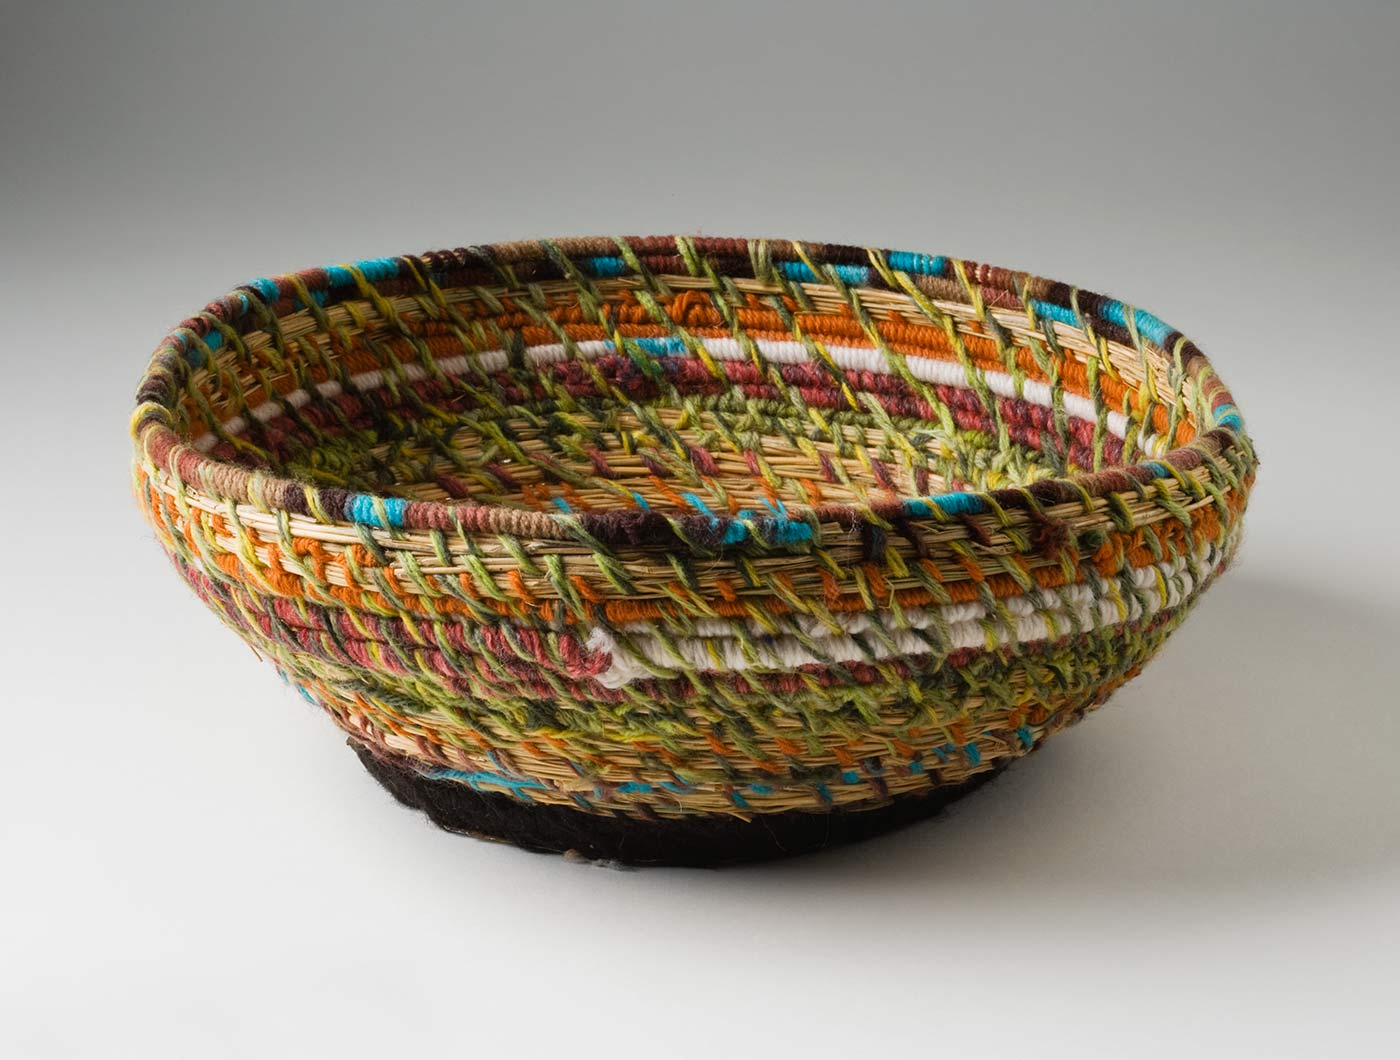 A circular coiled yarn and plant fibre basket with a flat metal base. The base is made of a blue 'Fray Bento / Steak and Kidney Pie' tin lid which has been attached to the yarn section with black yarn through holes punched in the metal. The coiled yarn in muted tones of green, orange, yellow,pink, turquoise, white and orange, is spaced out so the plant fibre centre can be seen. - click to view larger image